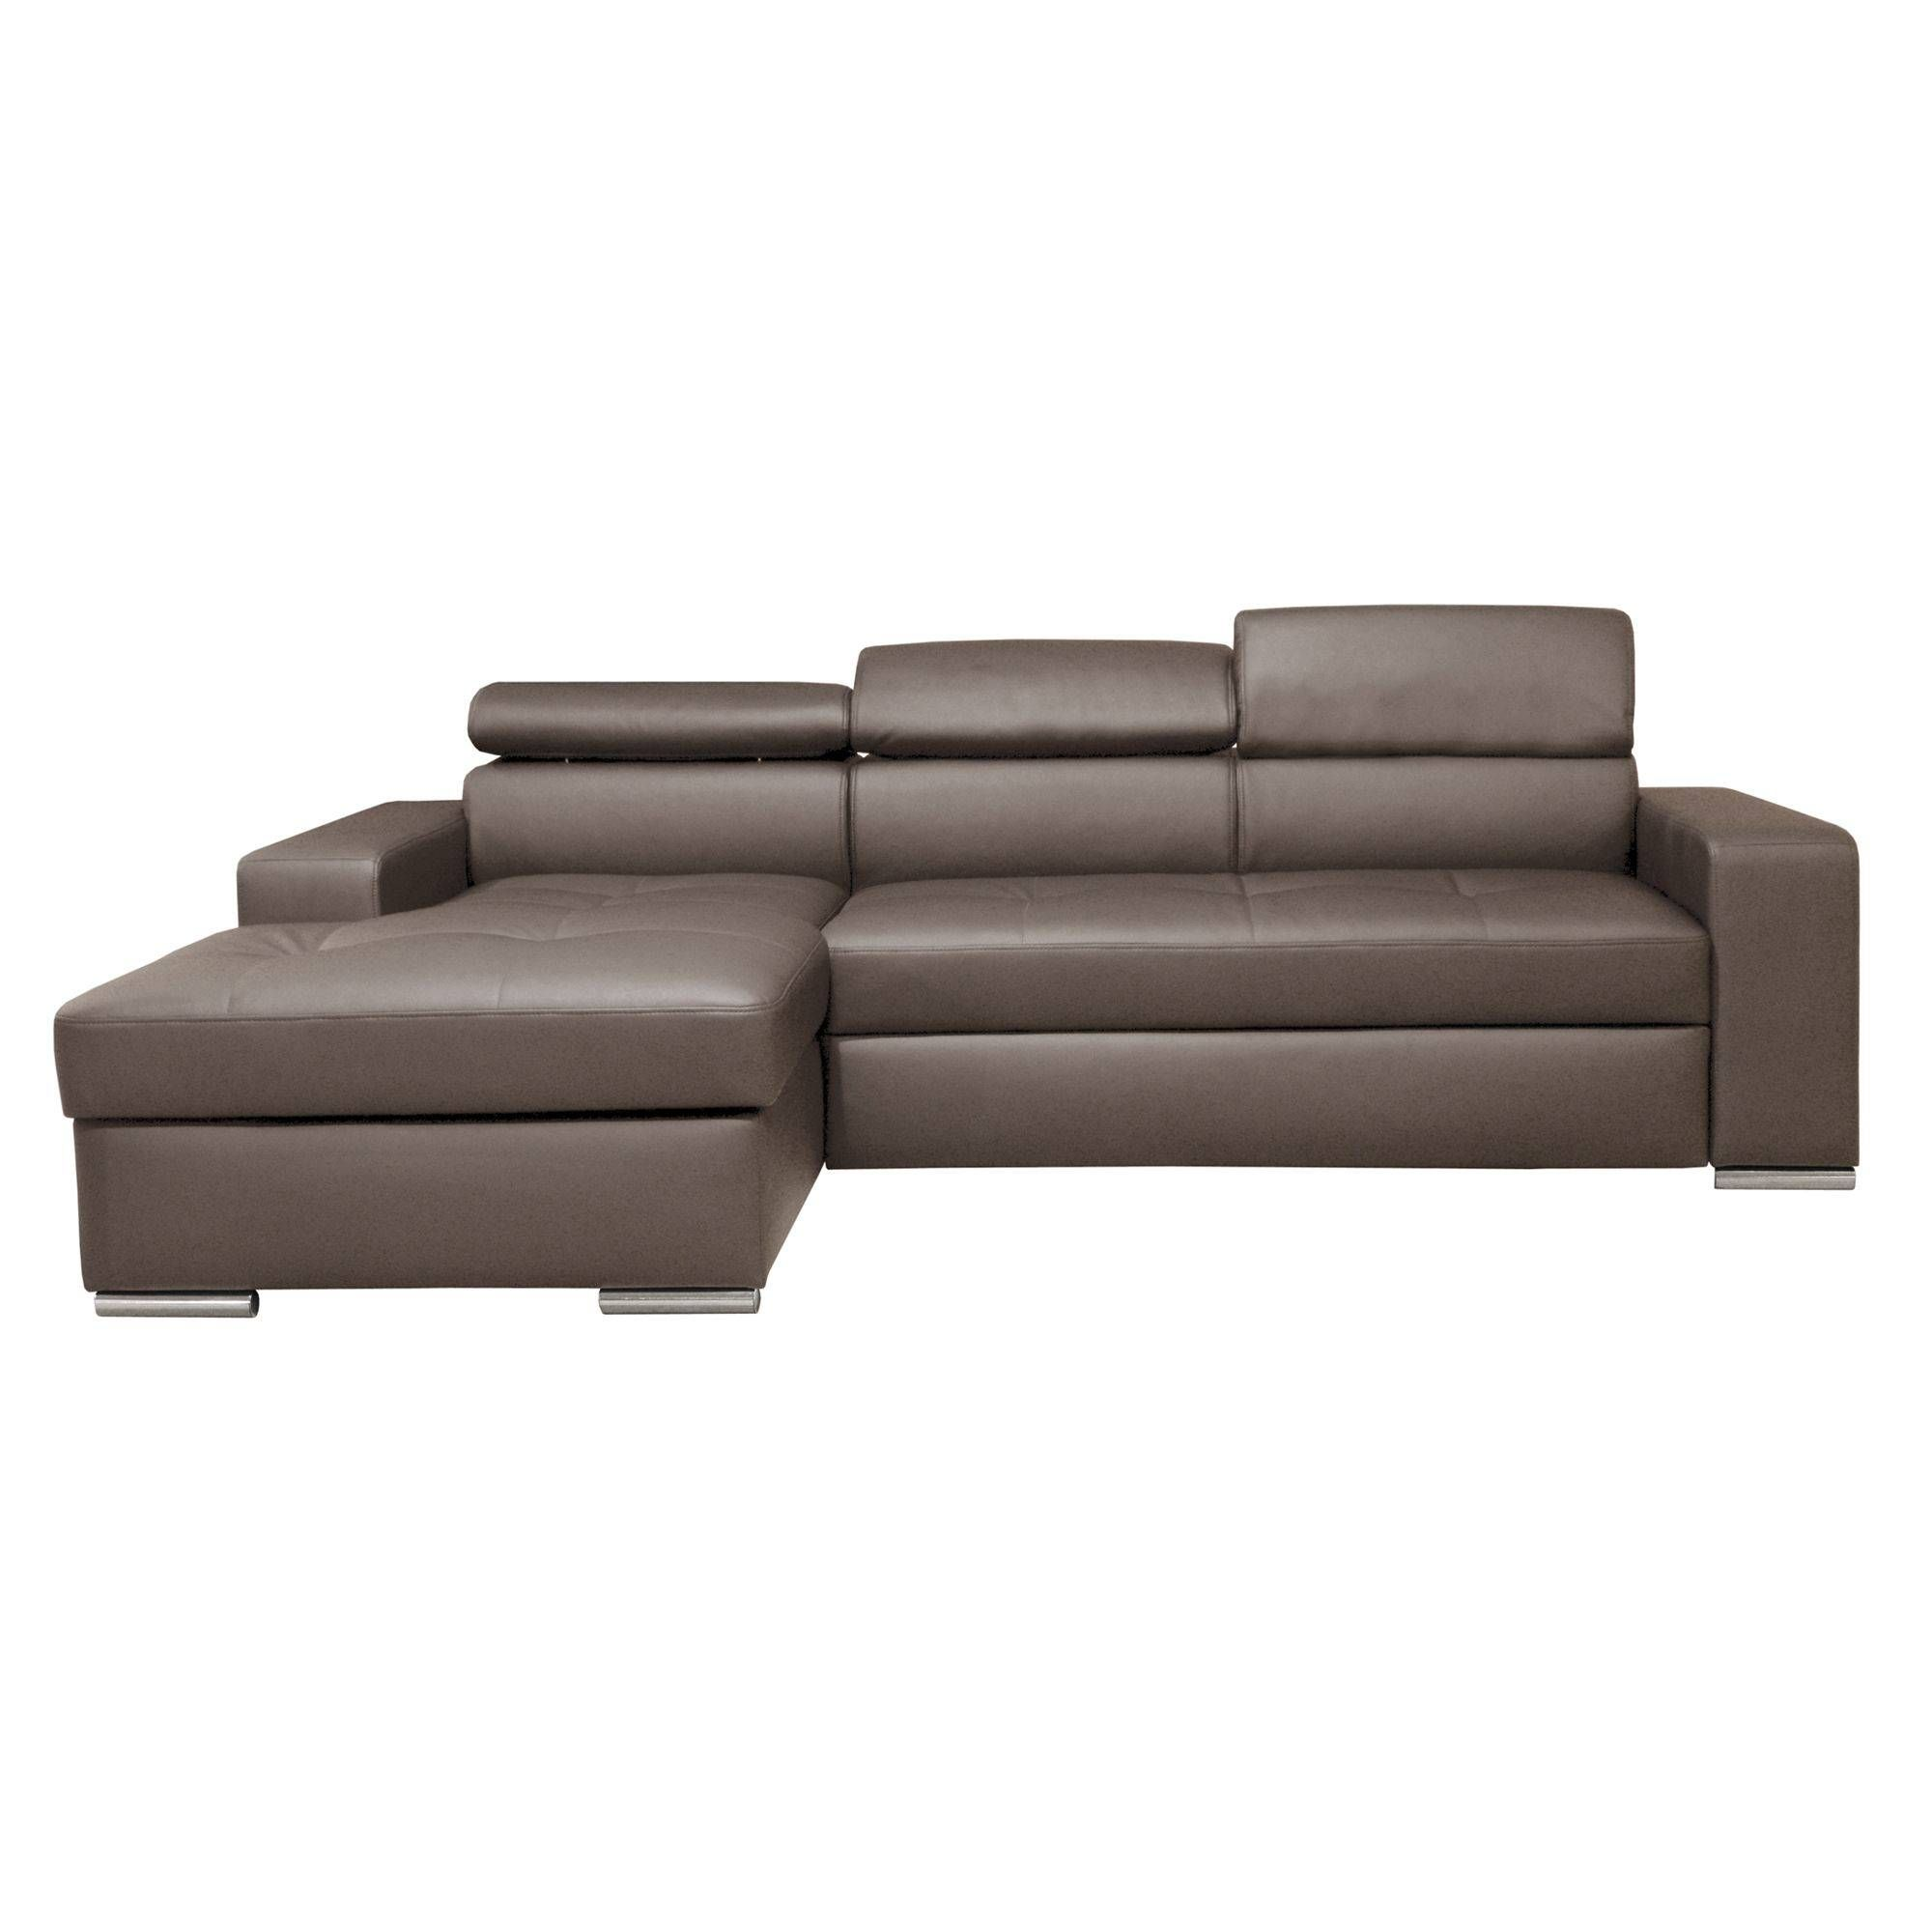 Canapeangle Canape Angle Alinea Canape D Angle Convertible Alinea Check More At Https Marcgoldinteriors Com Canape Angle A In 2020 Home Decor Sectional Couch Alinea